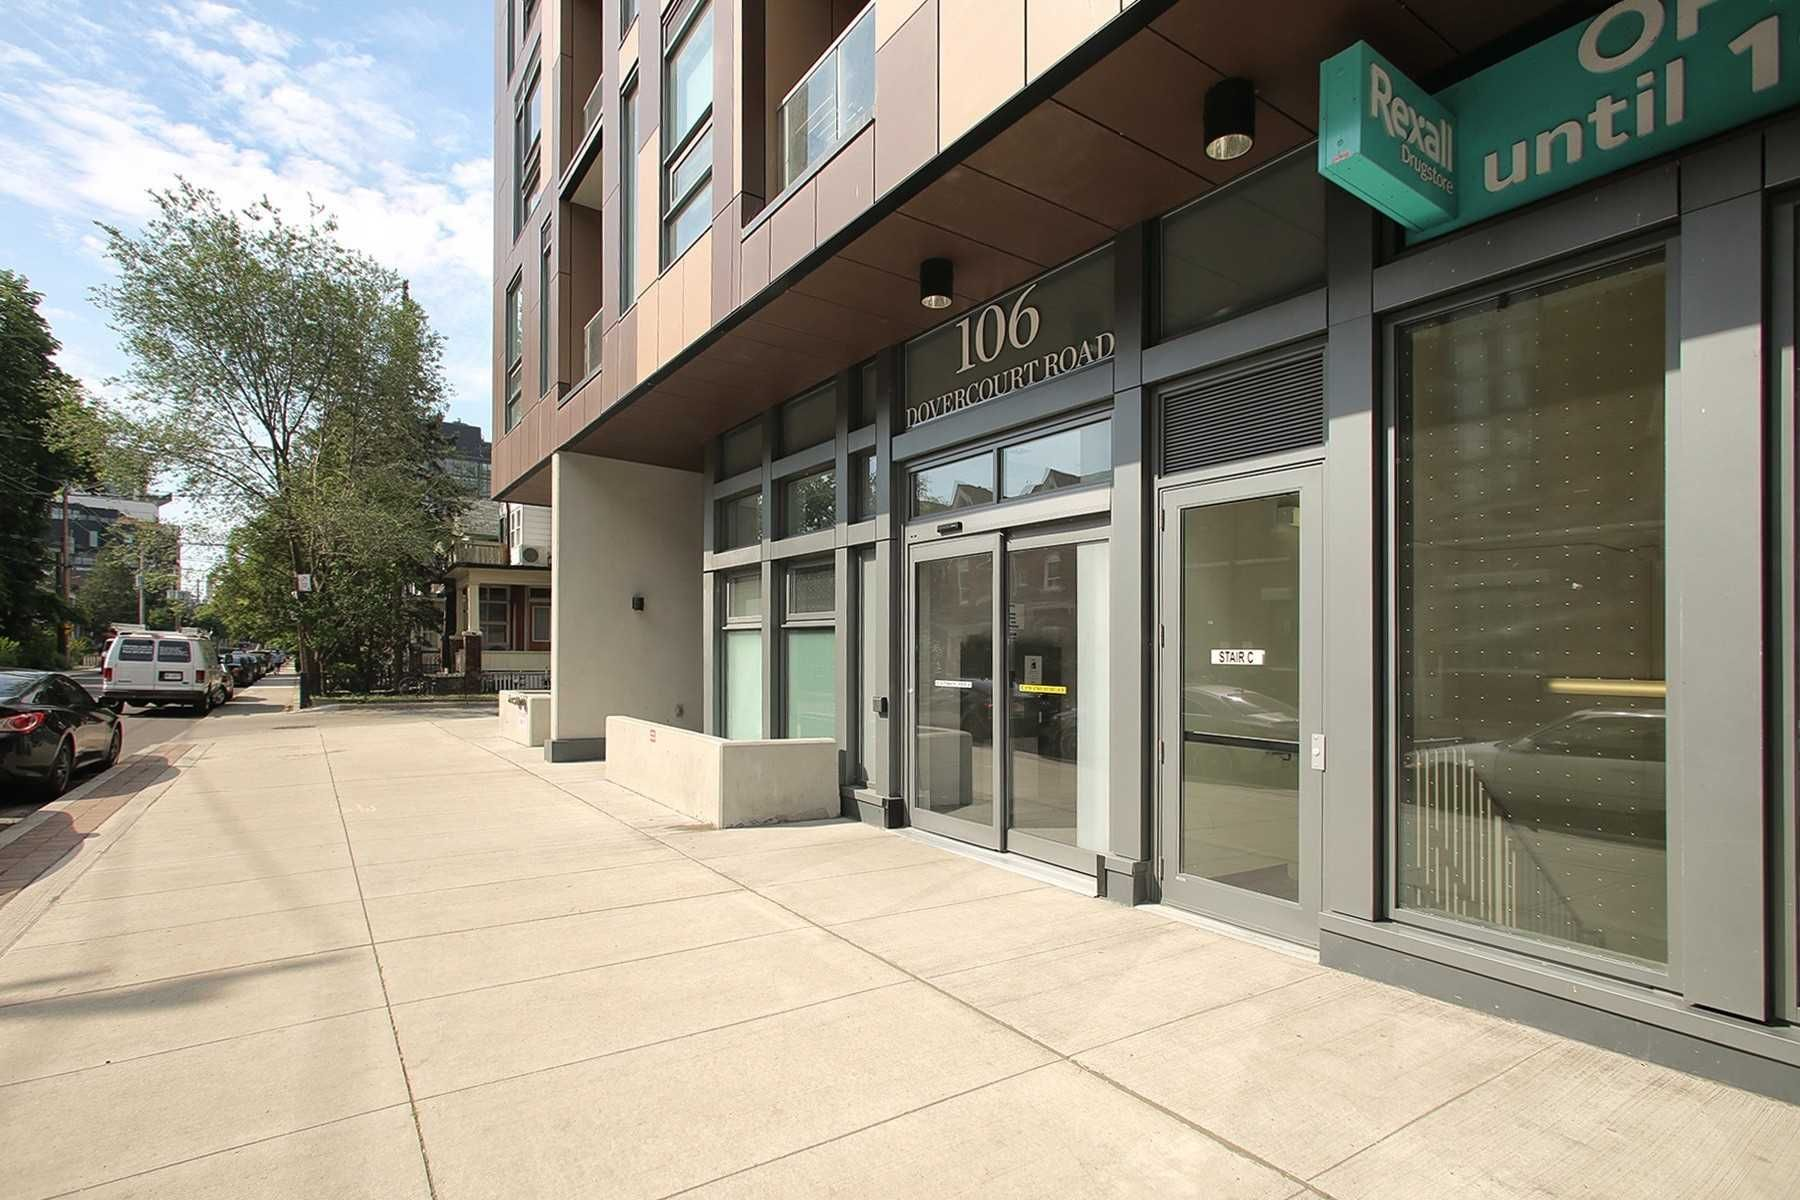 106 Dovercourt Rd, unit 514 for sale in Little Portugal - image #2